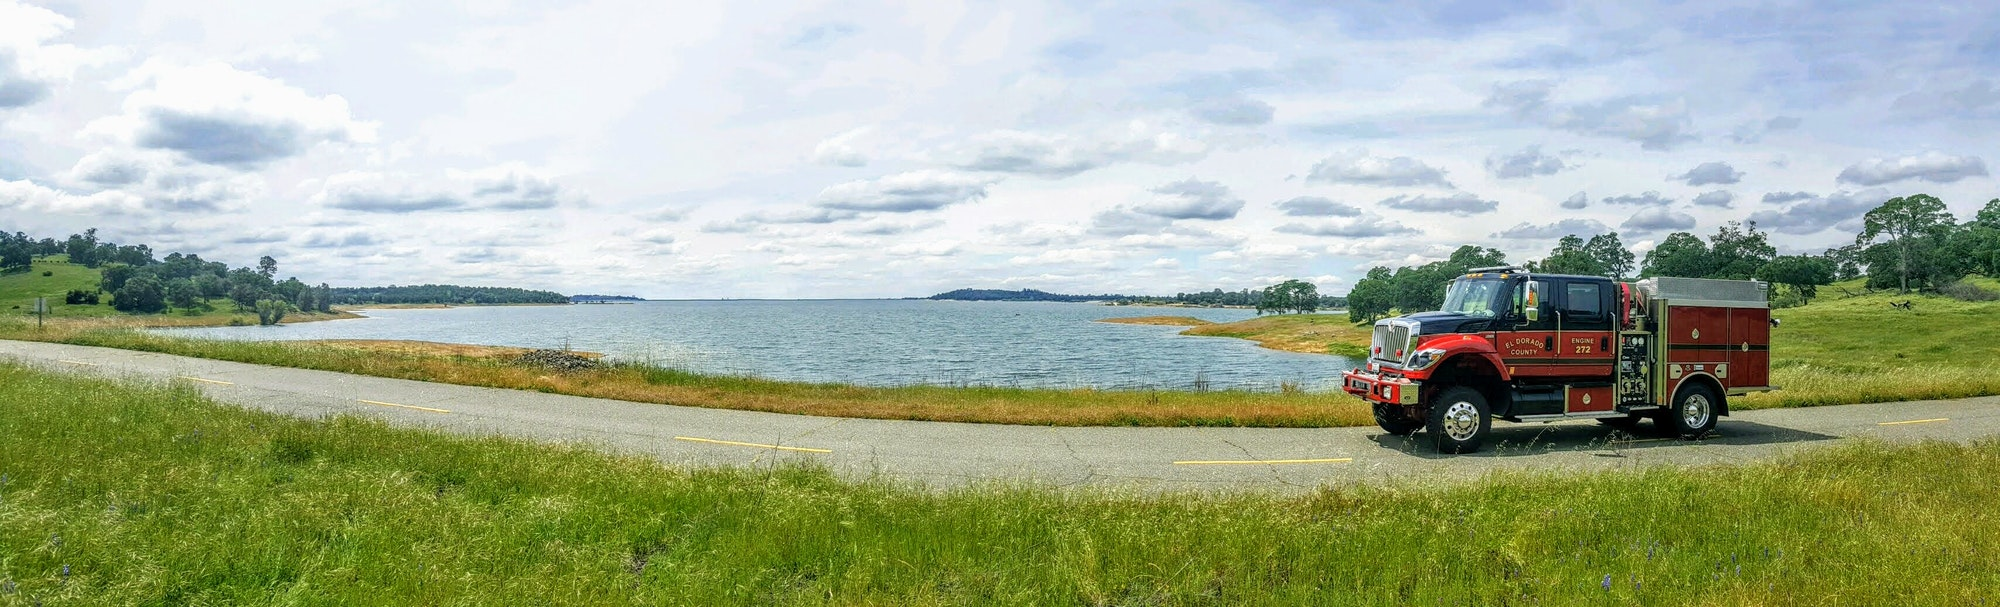 A fire engine along a grass lined road by Folsom Lake, clouds, water, lake, grass, trees, meadow